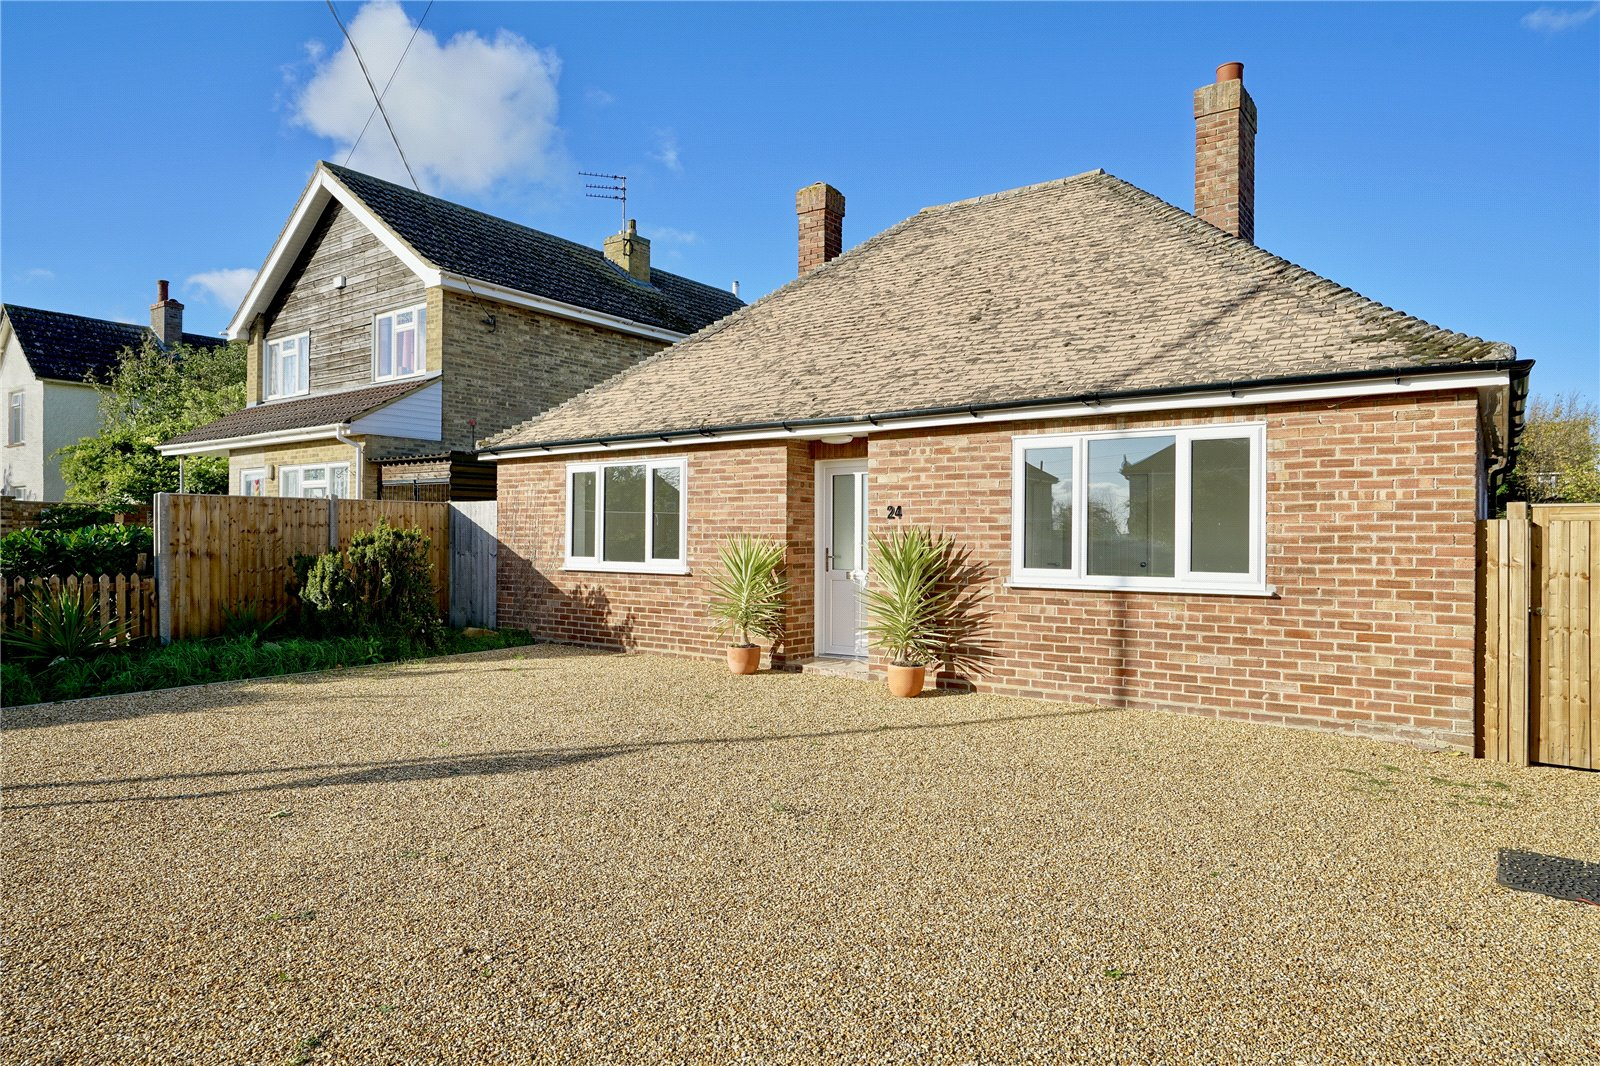 2 bed bungalow for sale in Bluntisham, PE28 3LN  - Property Image 1